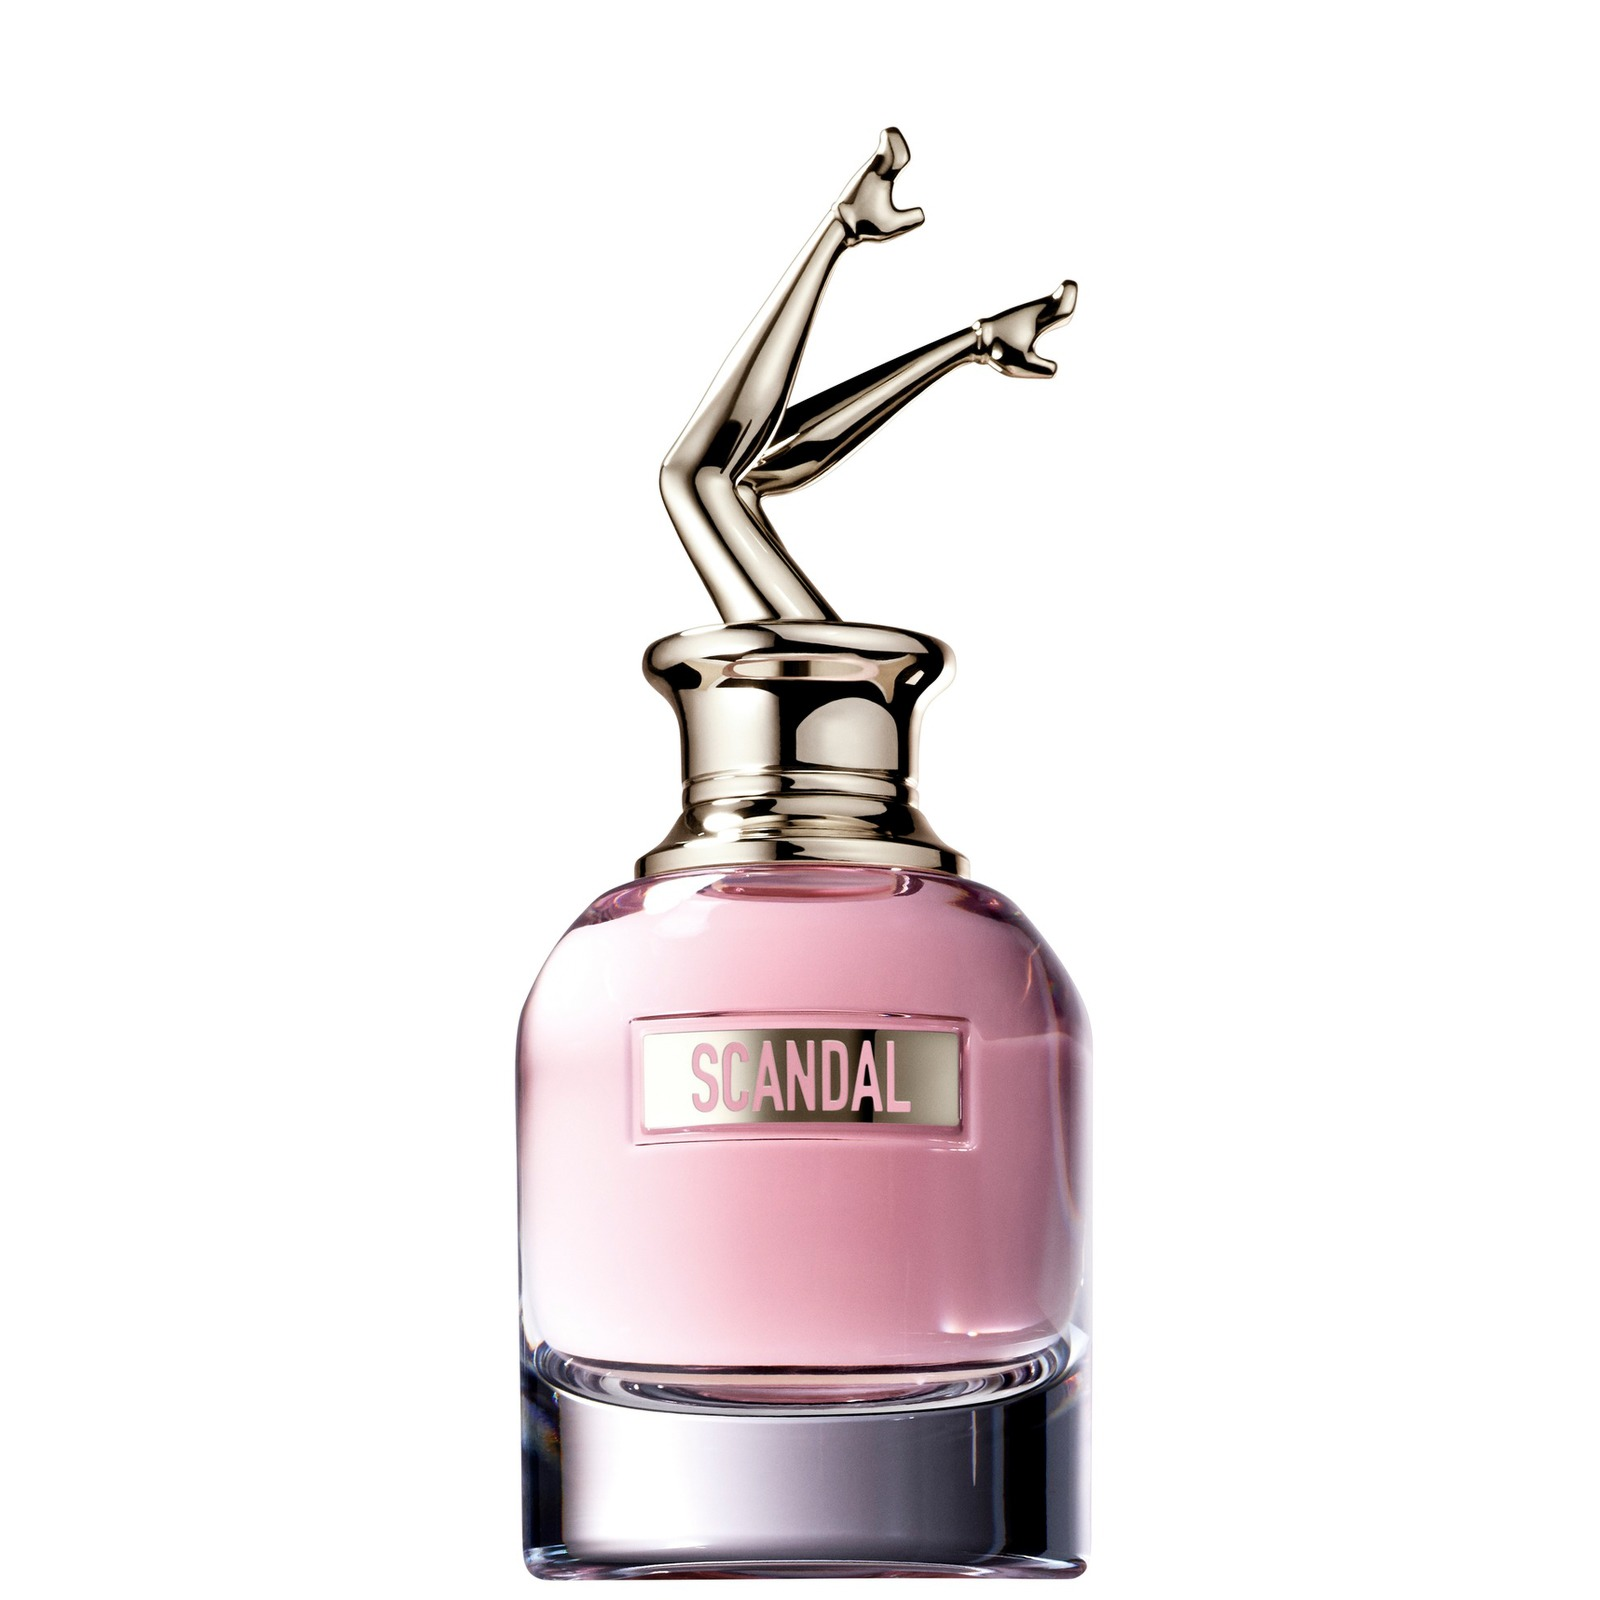 Jean Paul Gaultier Scandal a Paris Eau de Toilette Spray 50ml